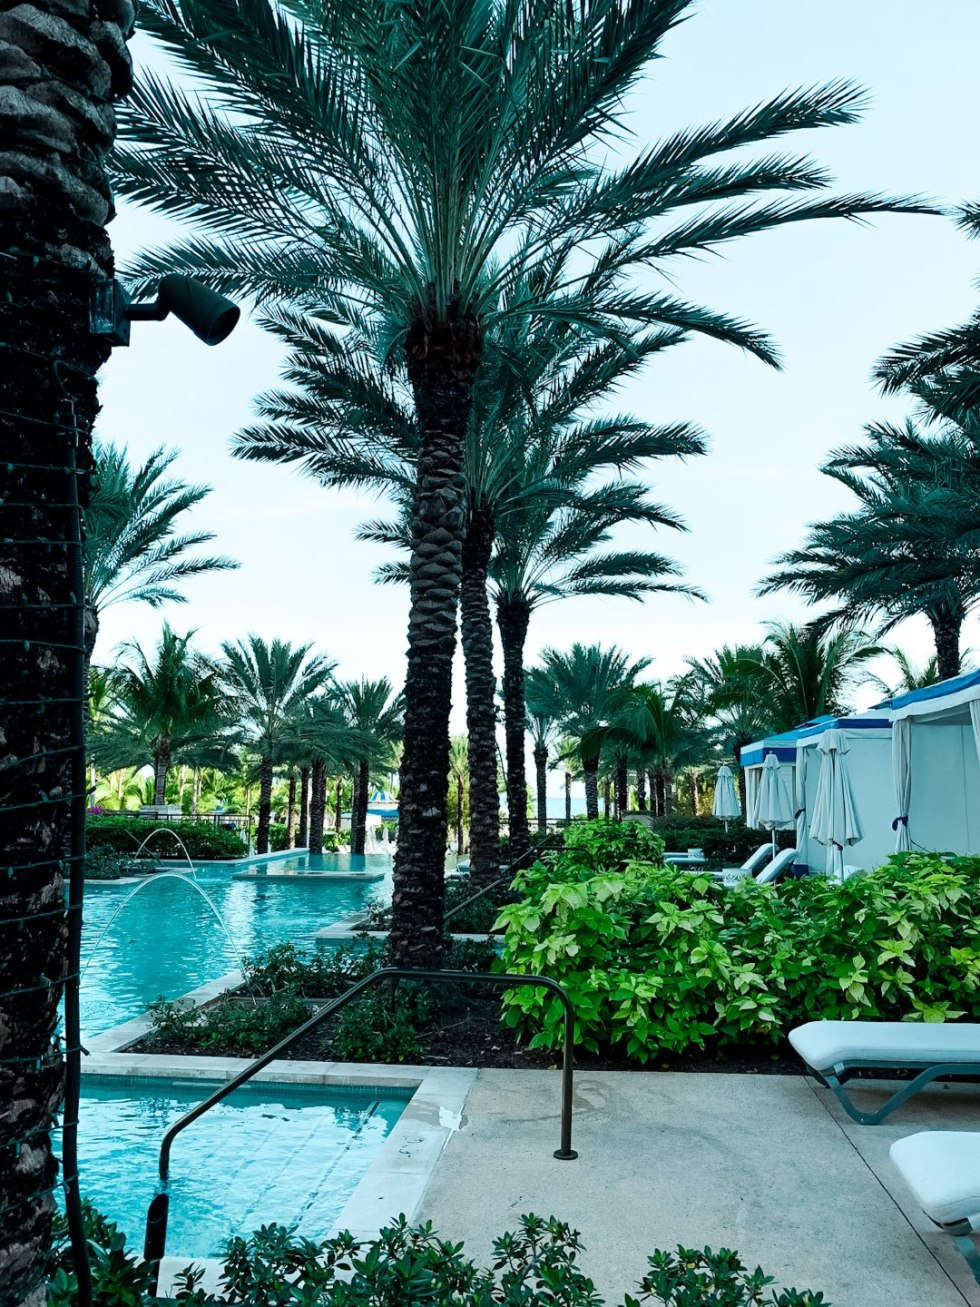 Warming Up in the Bahamas: the Best Things to Do at Baha Mar - I'm Fixin' To - @mbg0112 | Warming Up in the Bahamas: the Best Things to Do in Baha Mar by popular North Carolina travel blog, I'm Fixin' To: image of a swimming pool surrounded by palm trees.